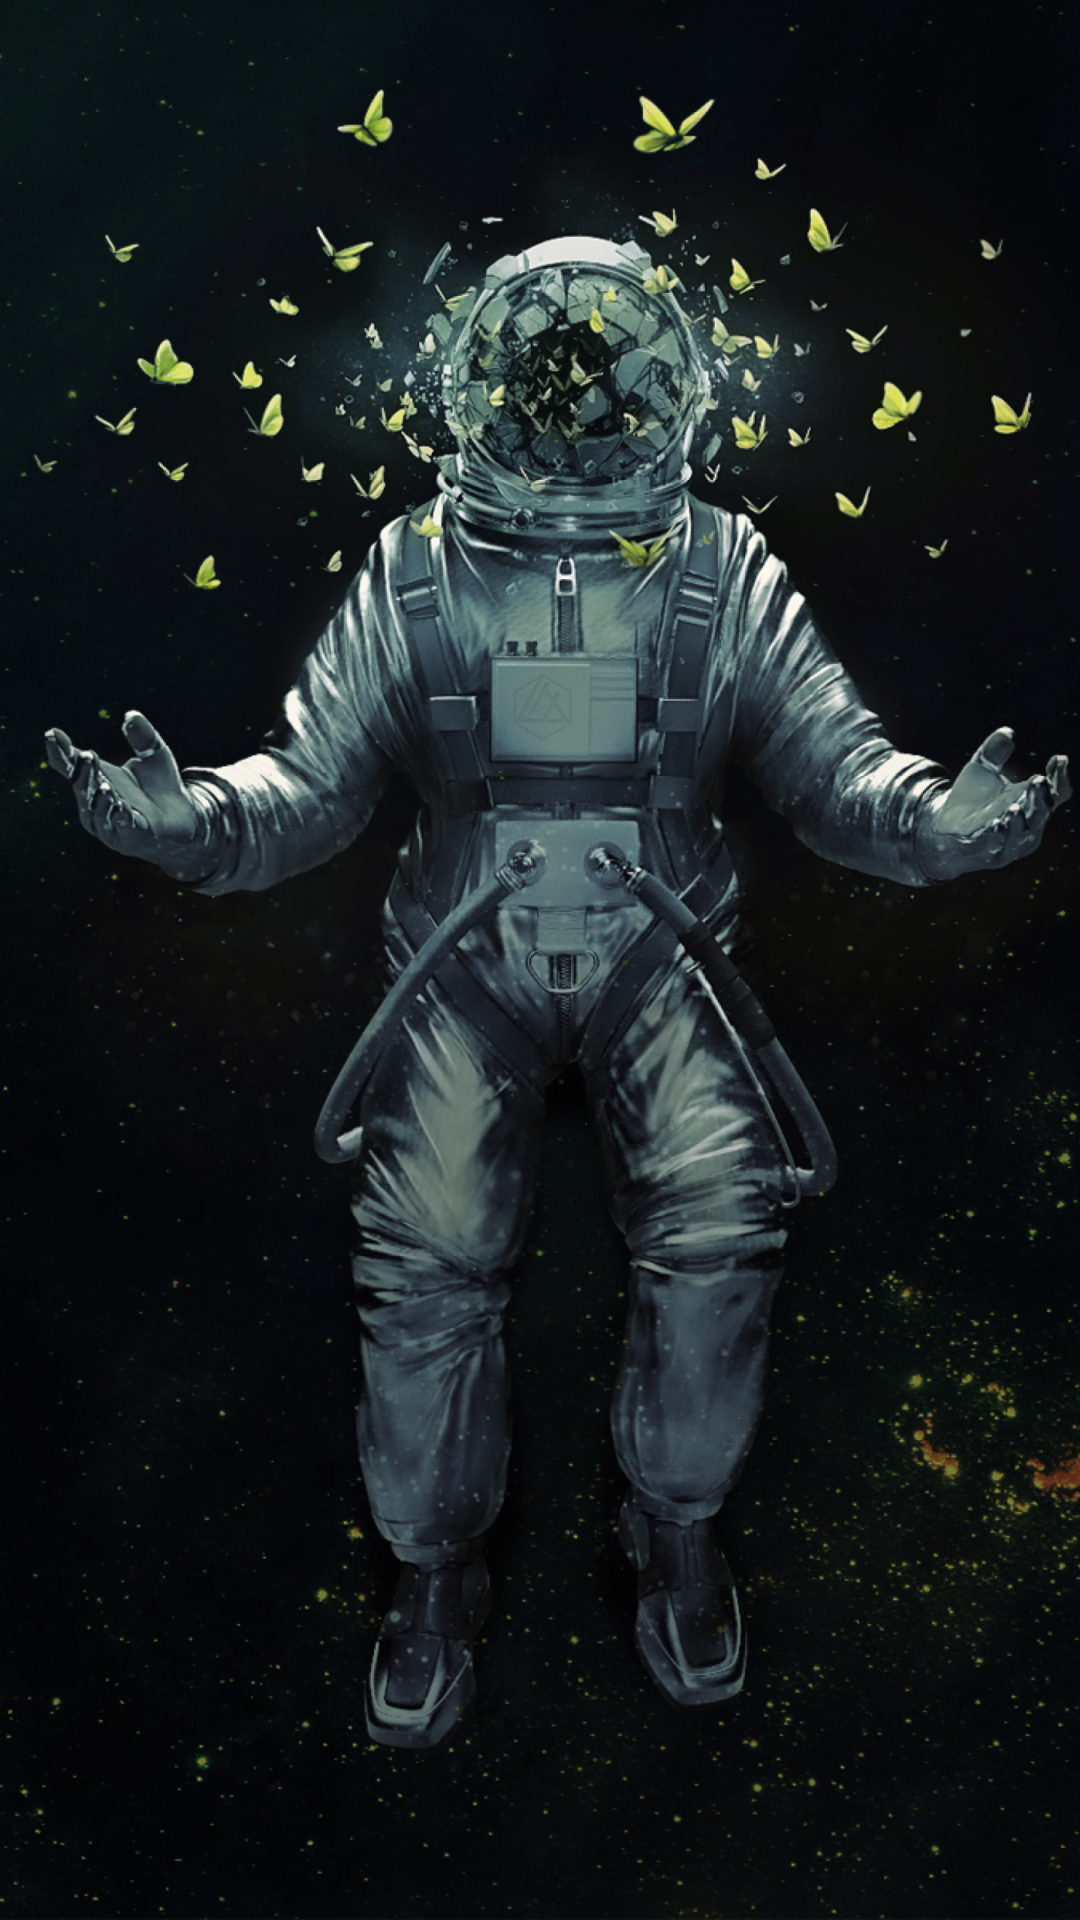 Iphone 5 Wallpaper Astronaut